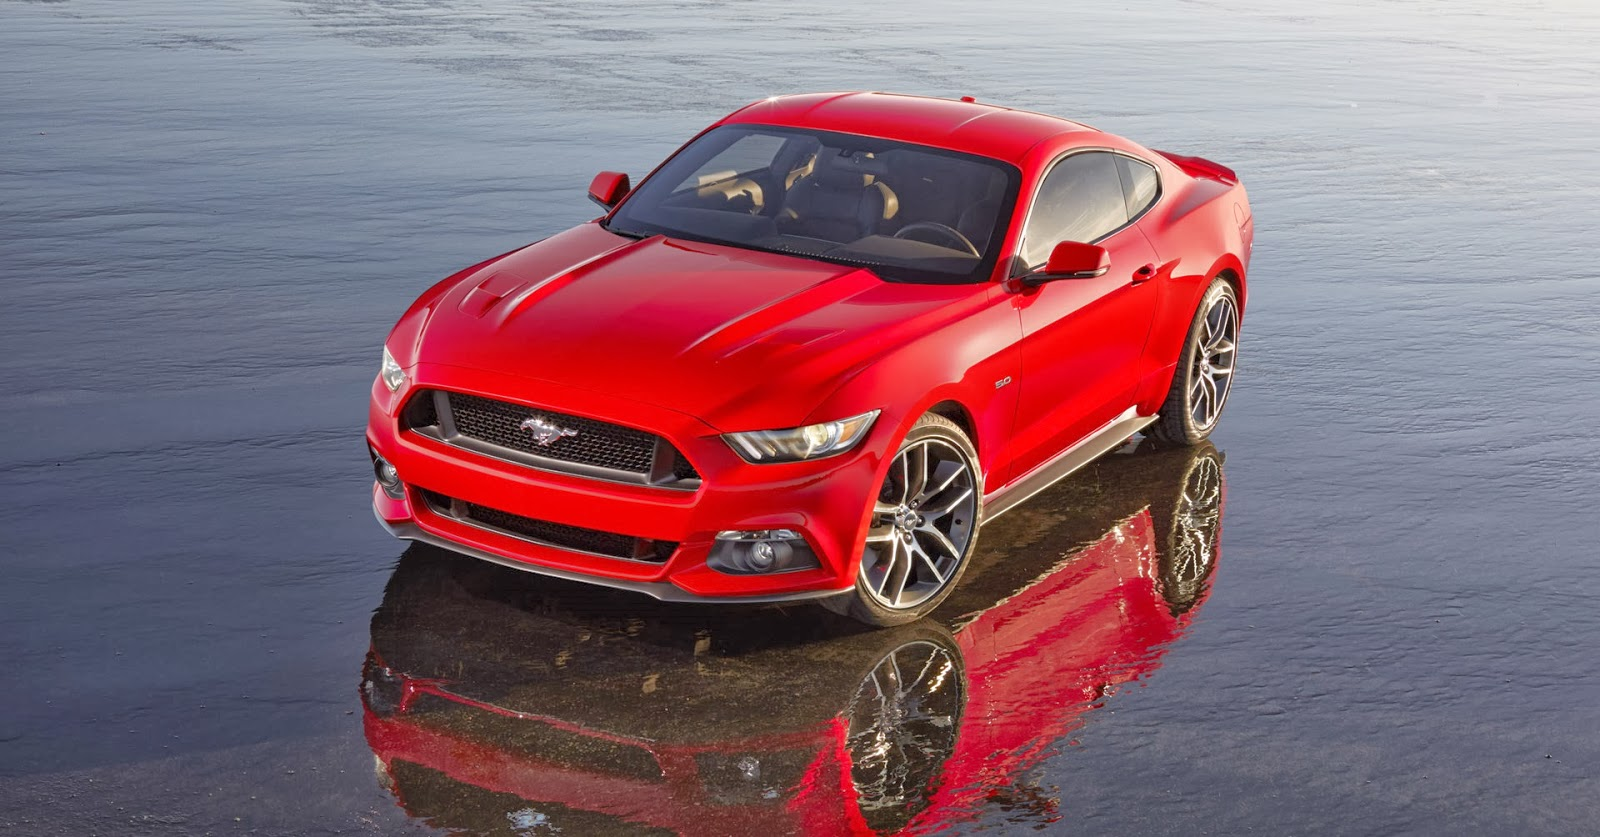 Wallpaper Ford Mustang 2018 Hd Automotive Cars 5863: Ford Mustang GT Car HD Wallpapers 2015 - New Models